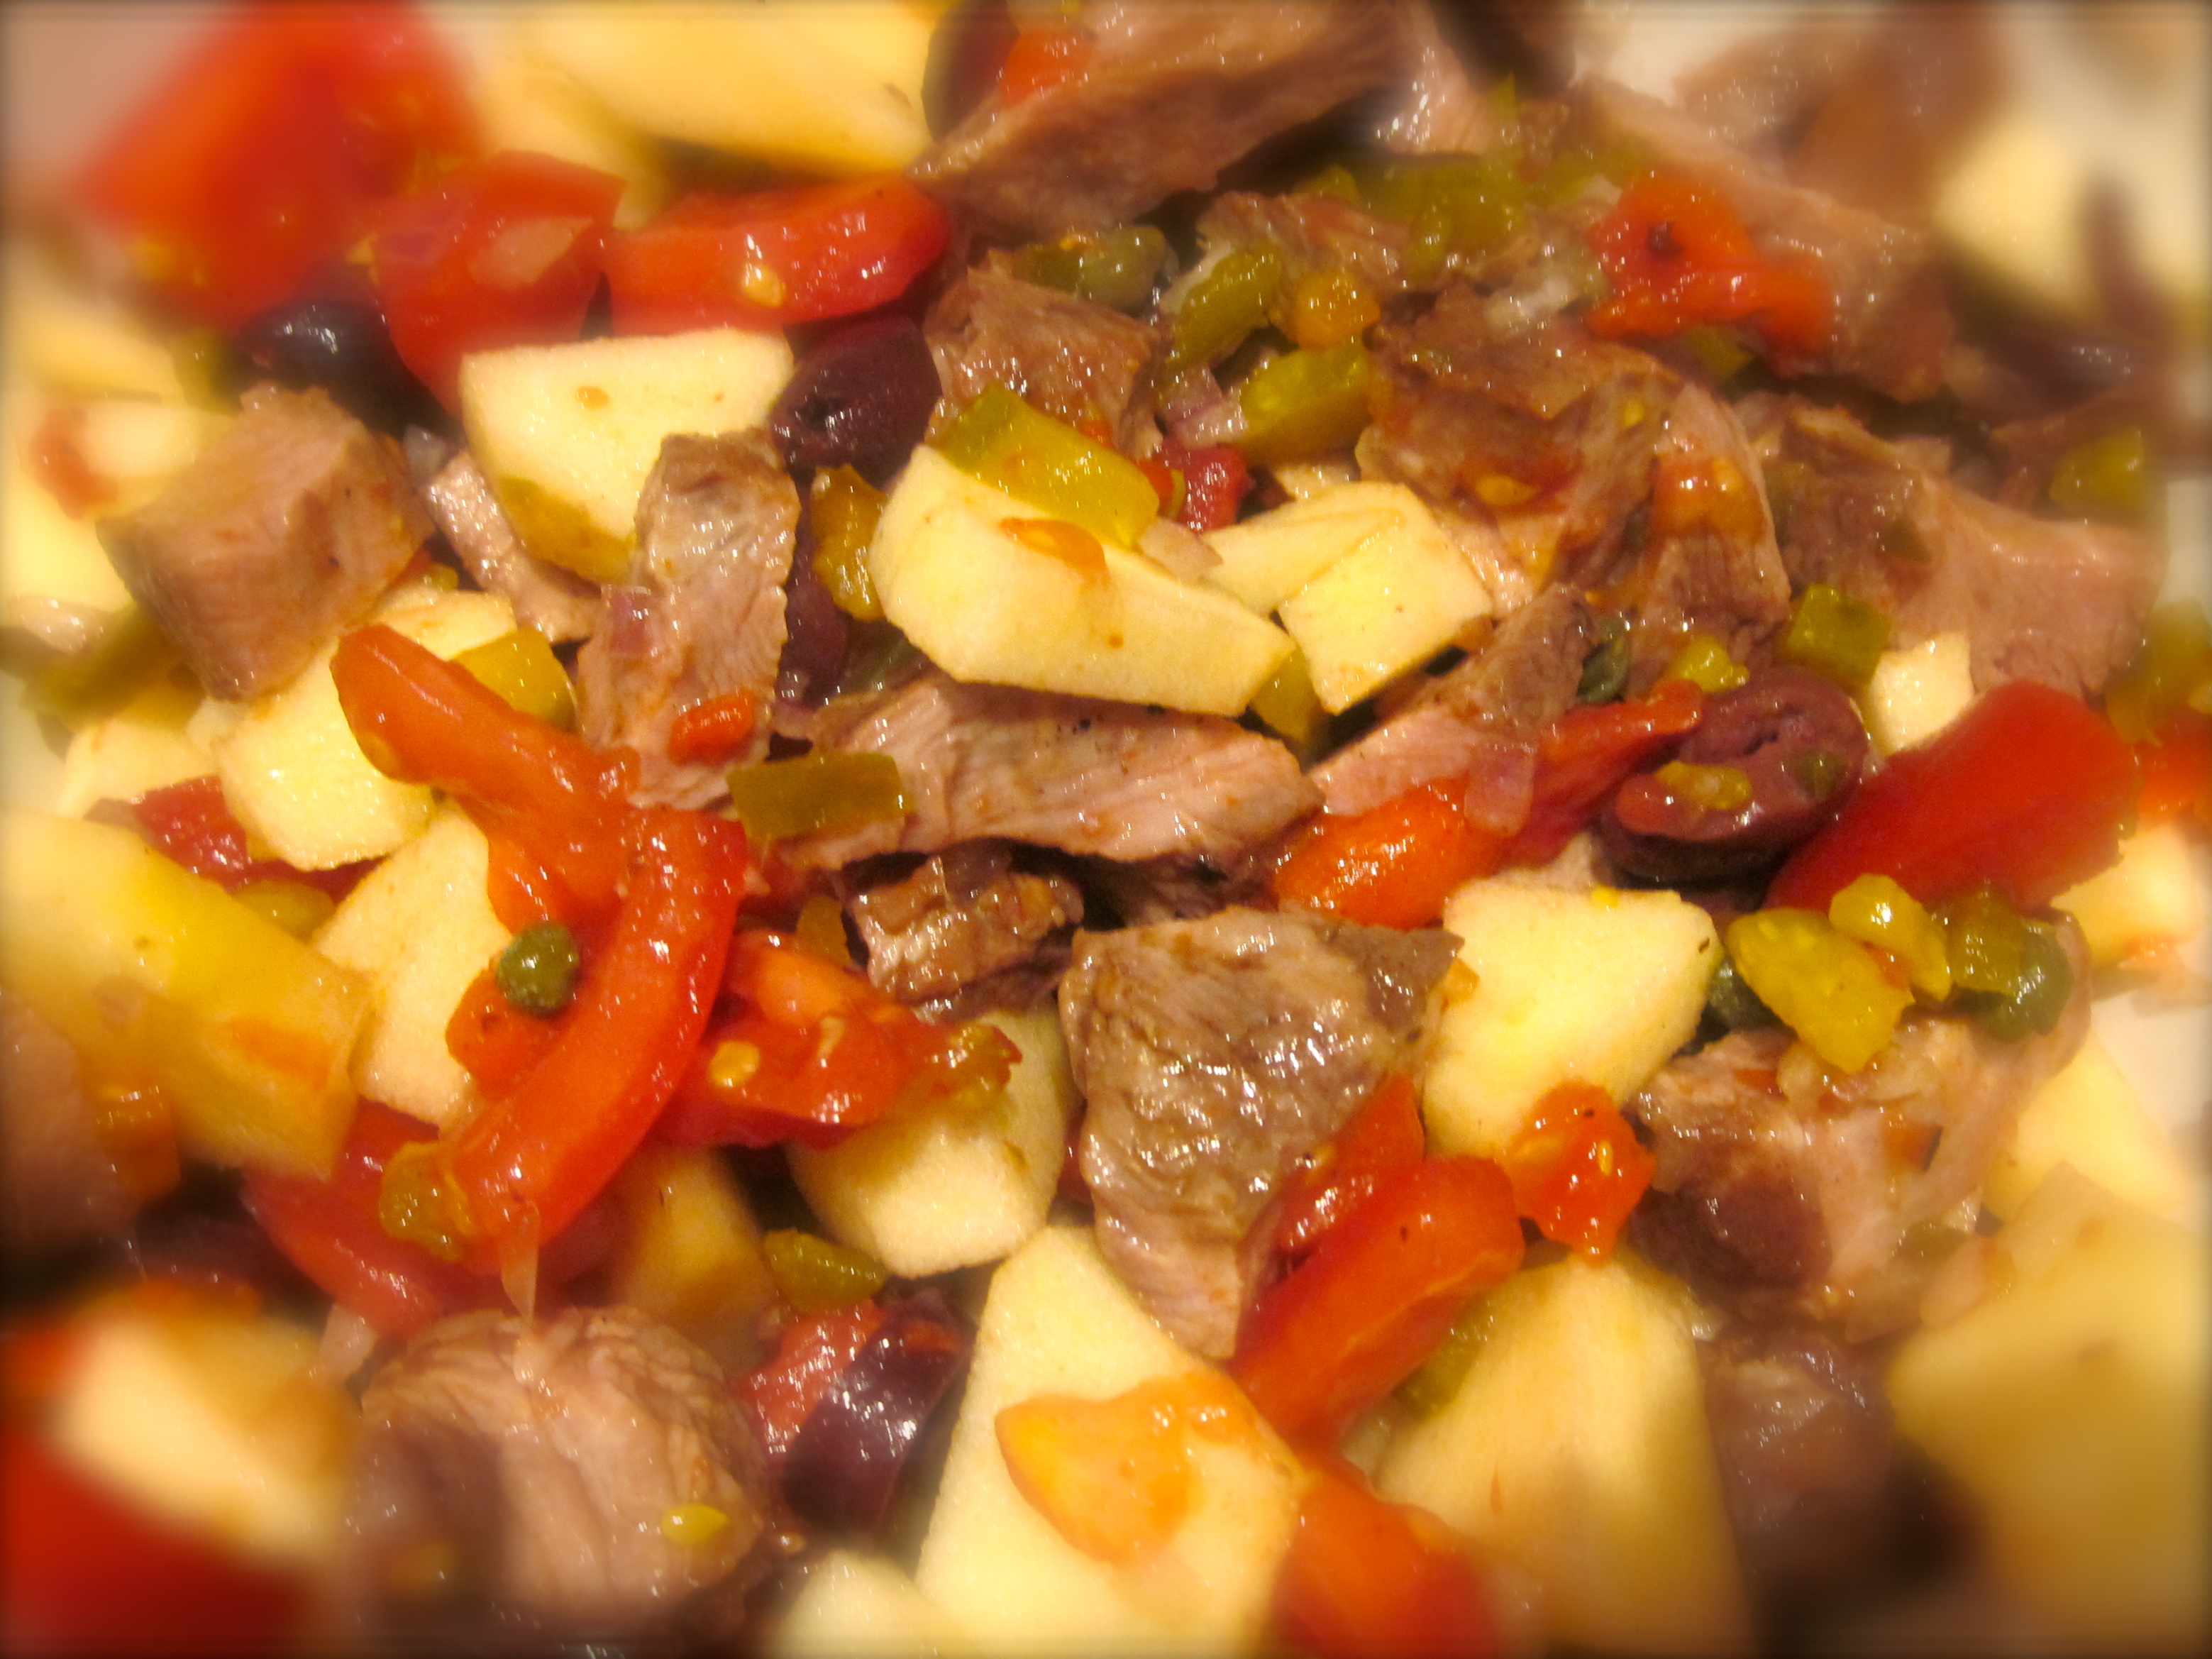 A big bowl of ingredients for my beef salad: diced beef, onions, olives, cornichons, tomatoes, capers, red bell and chile peppers.